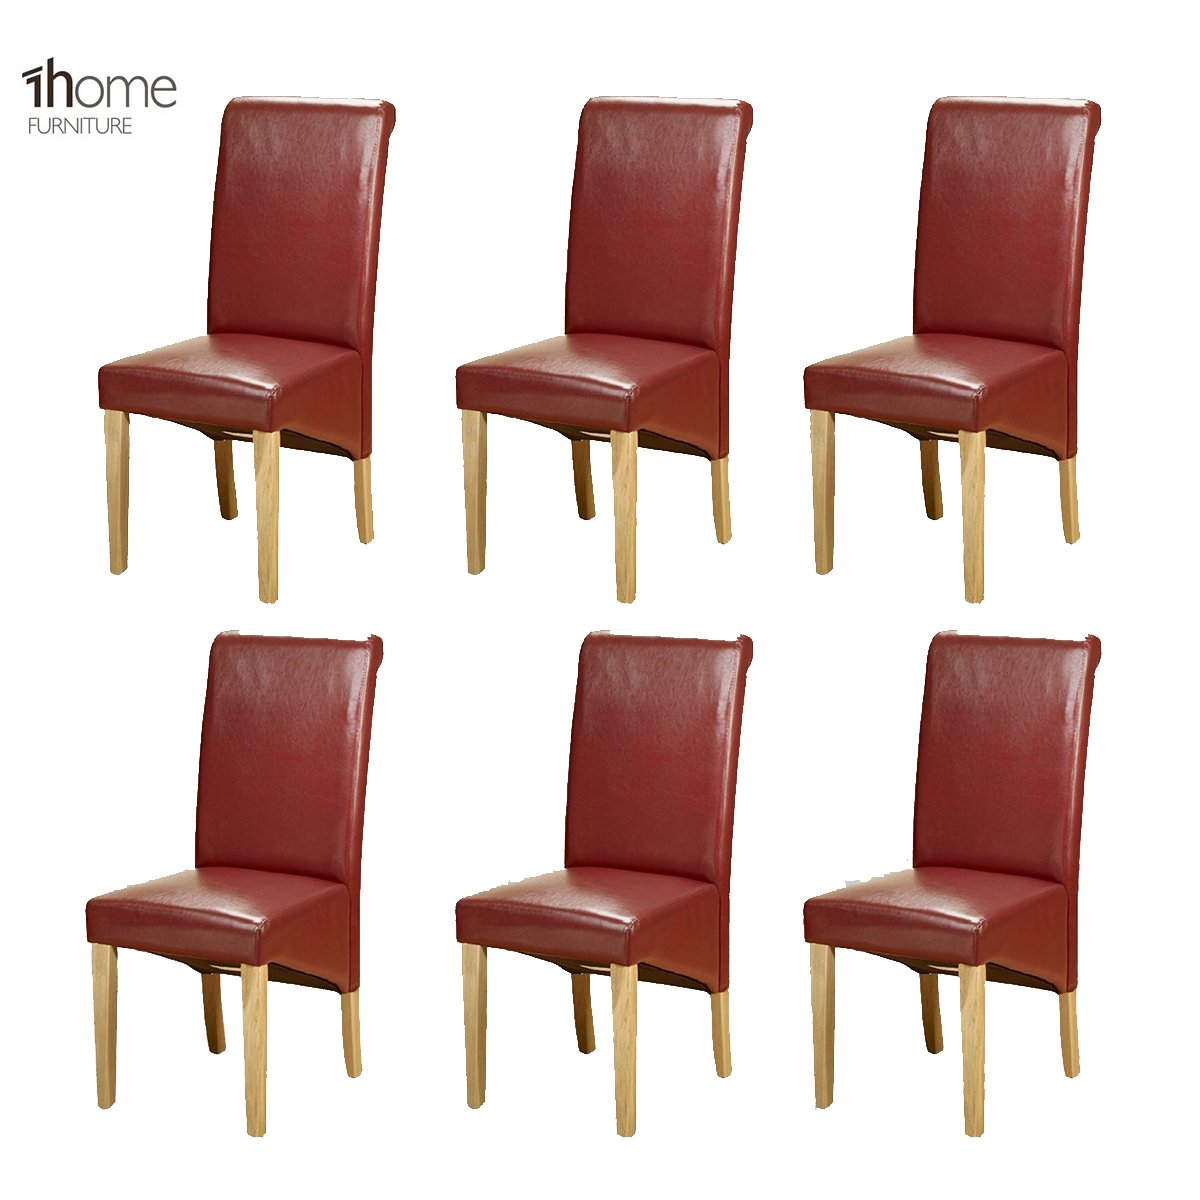 1home 6 x leather red dining chair w oak finish wood legs roll top high back amazon co uk kitchen home